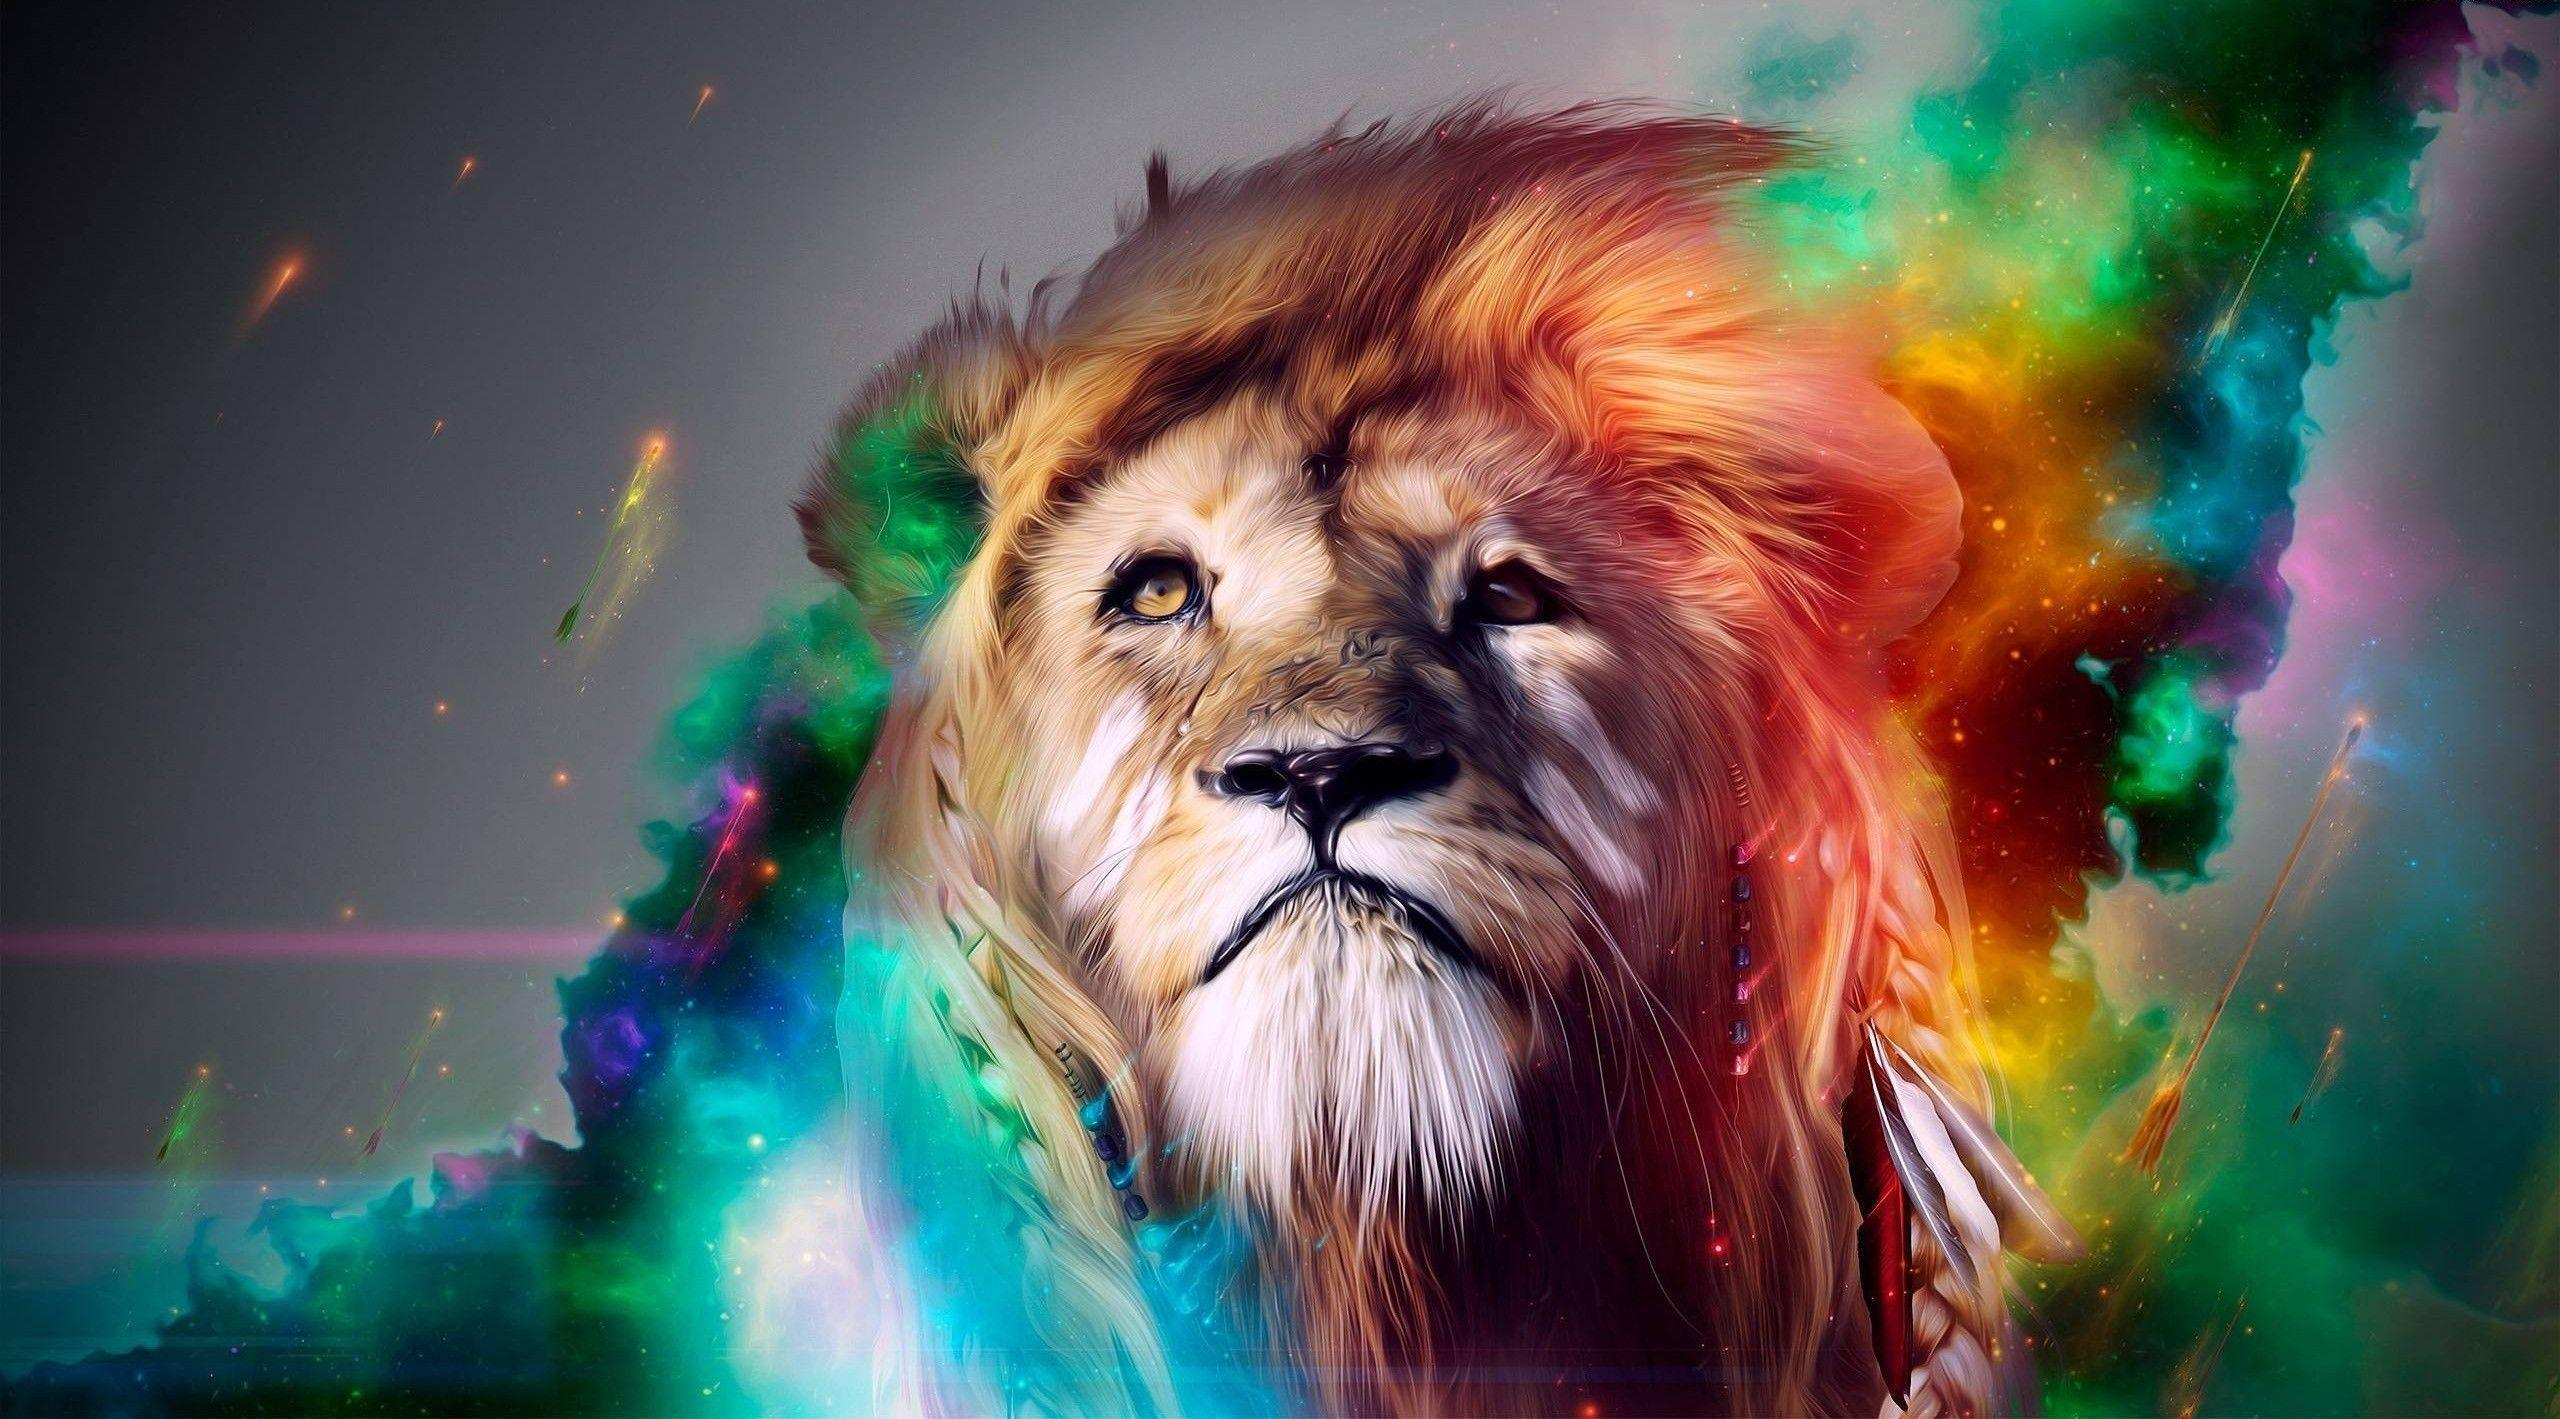 Lion 4k Wallpapers For Your Desktop Or Mobile Screen Free